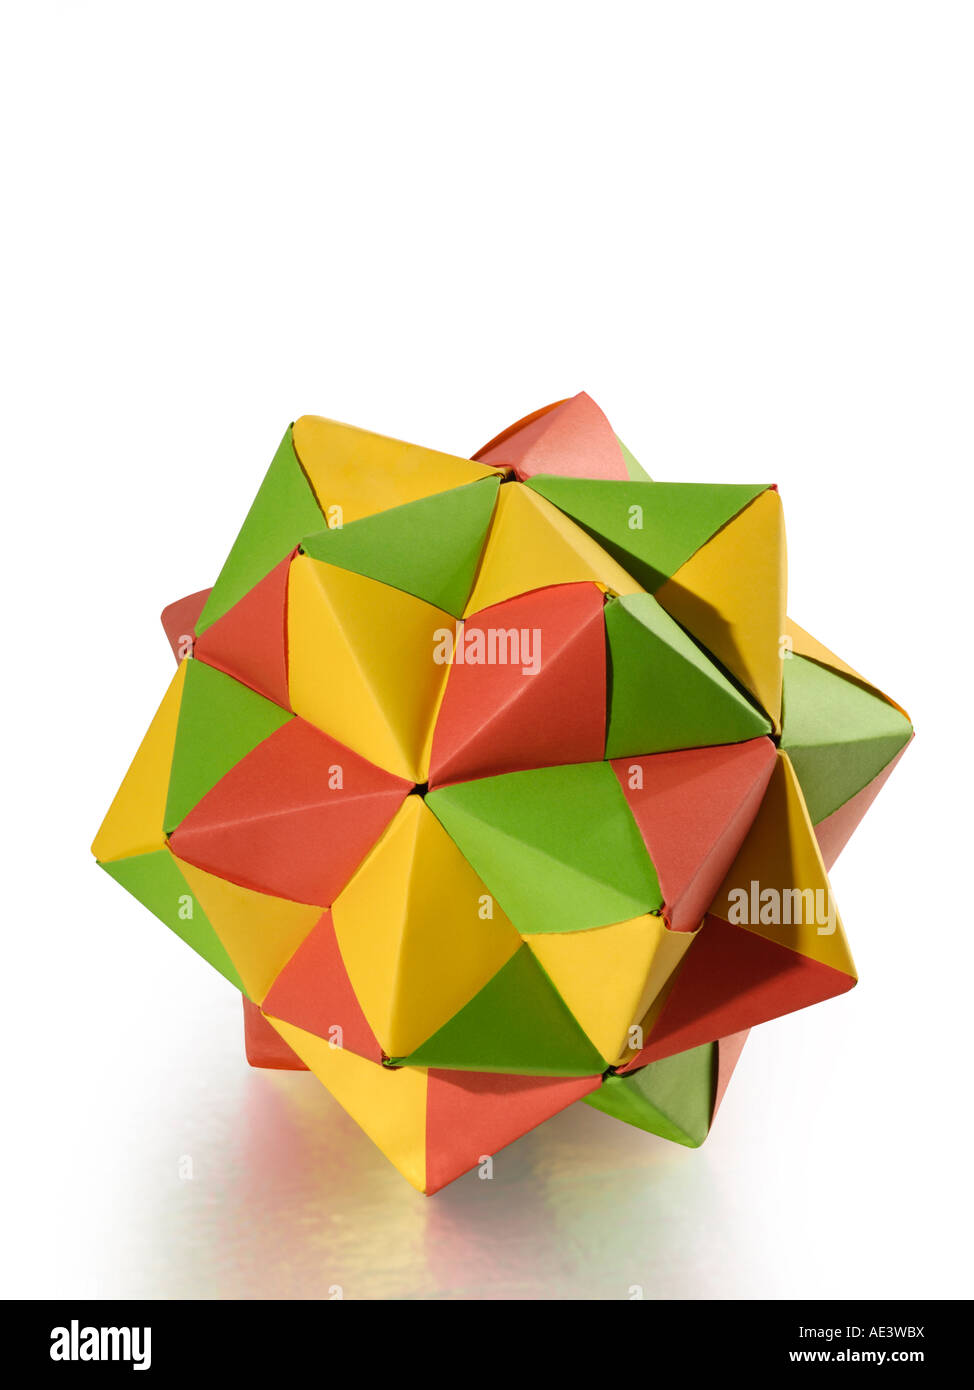 Colorful Origami paper figure polyhedron - Stock Image